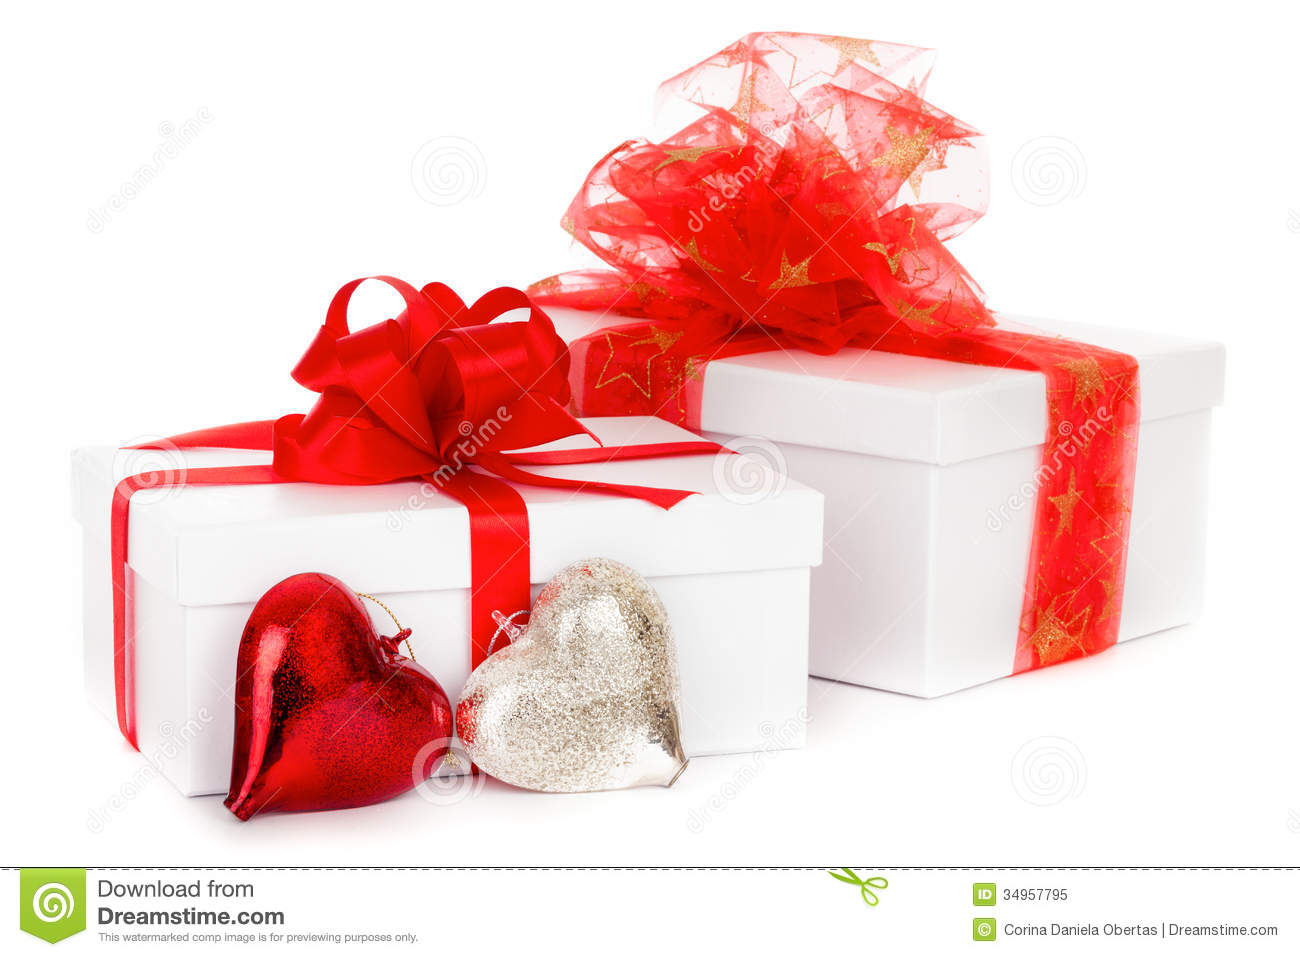 Christmas Gifts stock image. Image of decoration, festive - 34957795